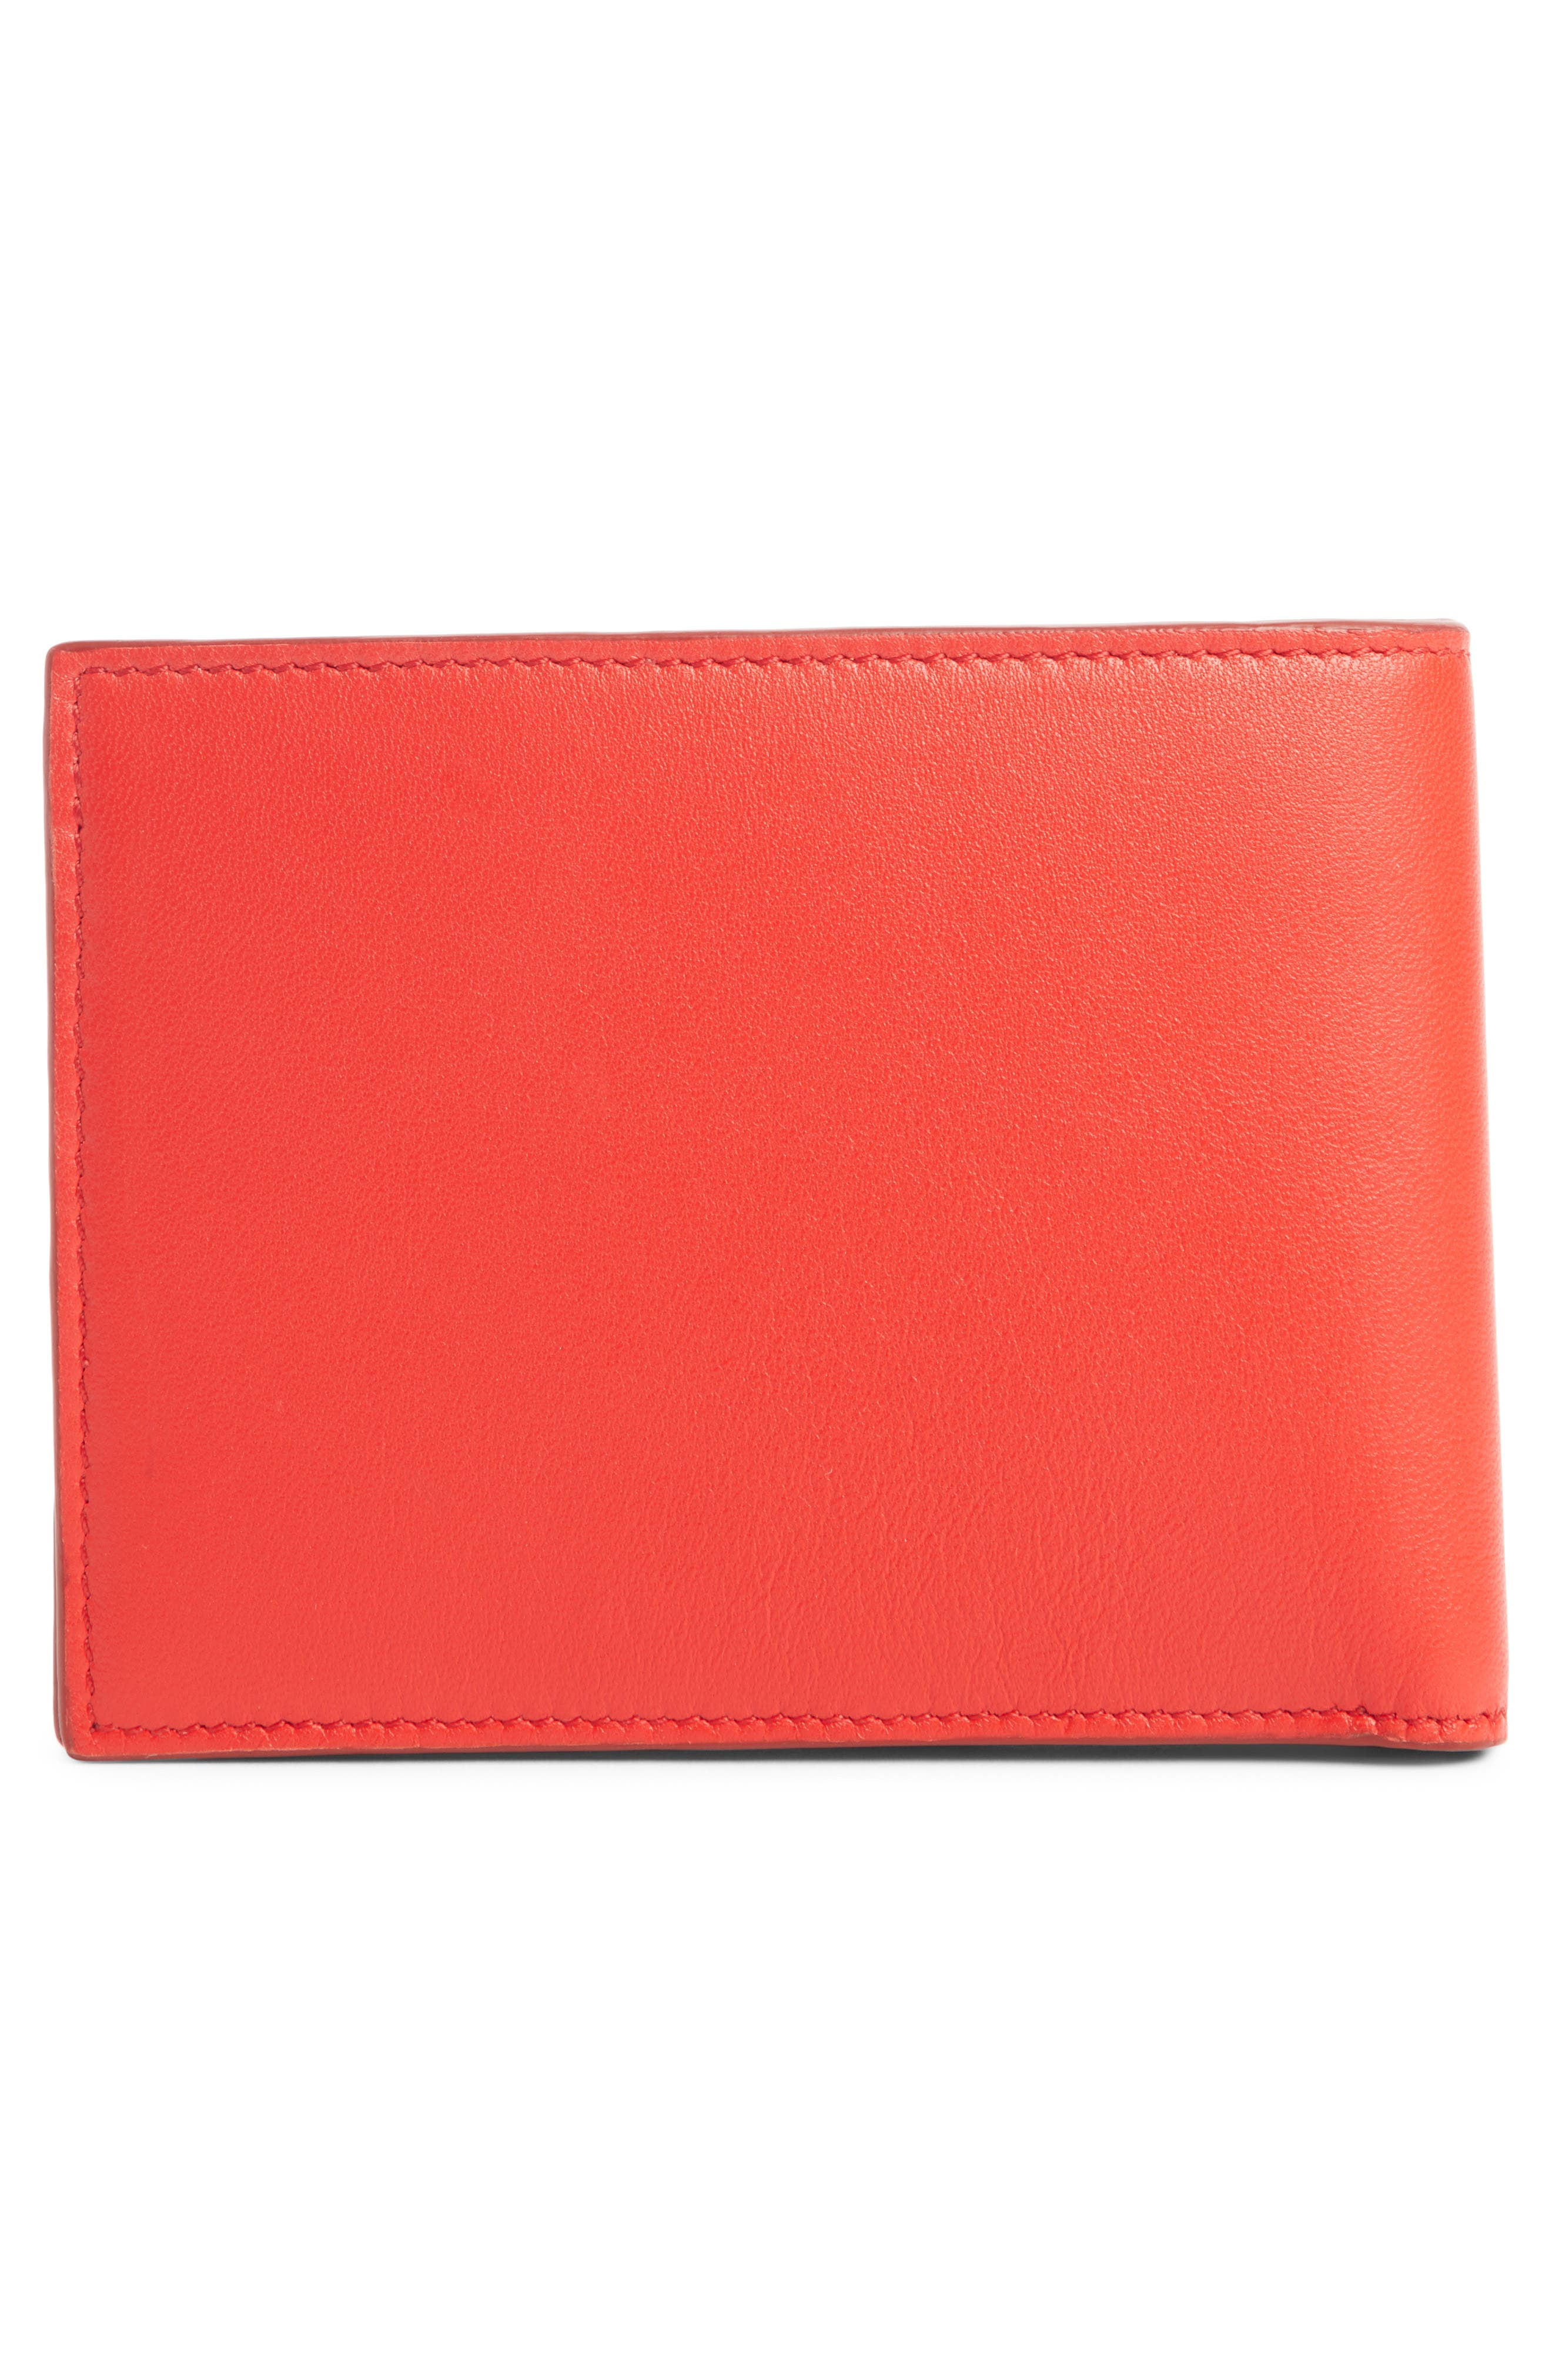 Embossed 4G Leather Bifold Wallet,                             Alternate thumbnail 3, color,                             RED